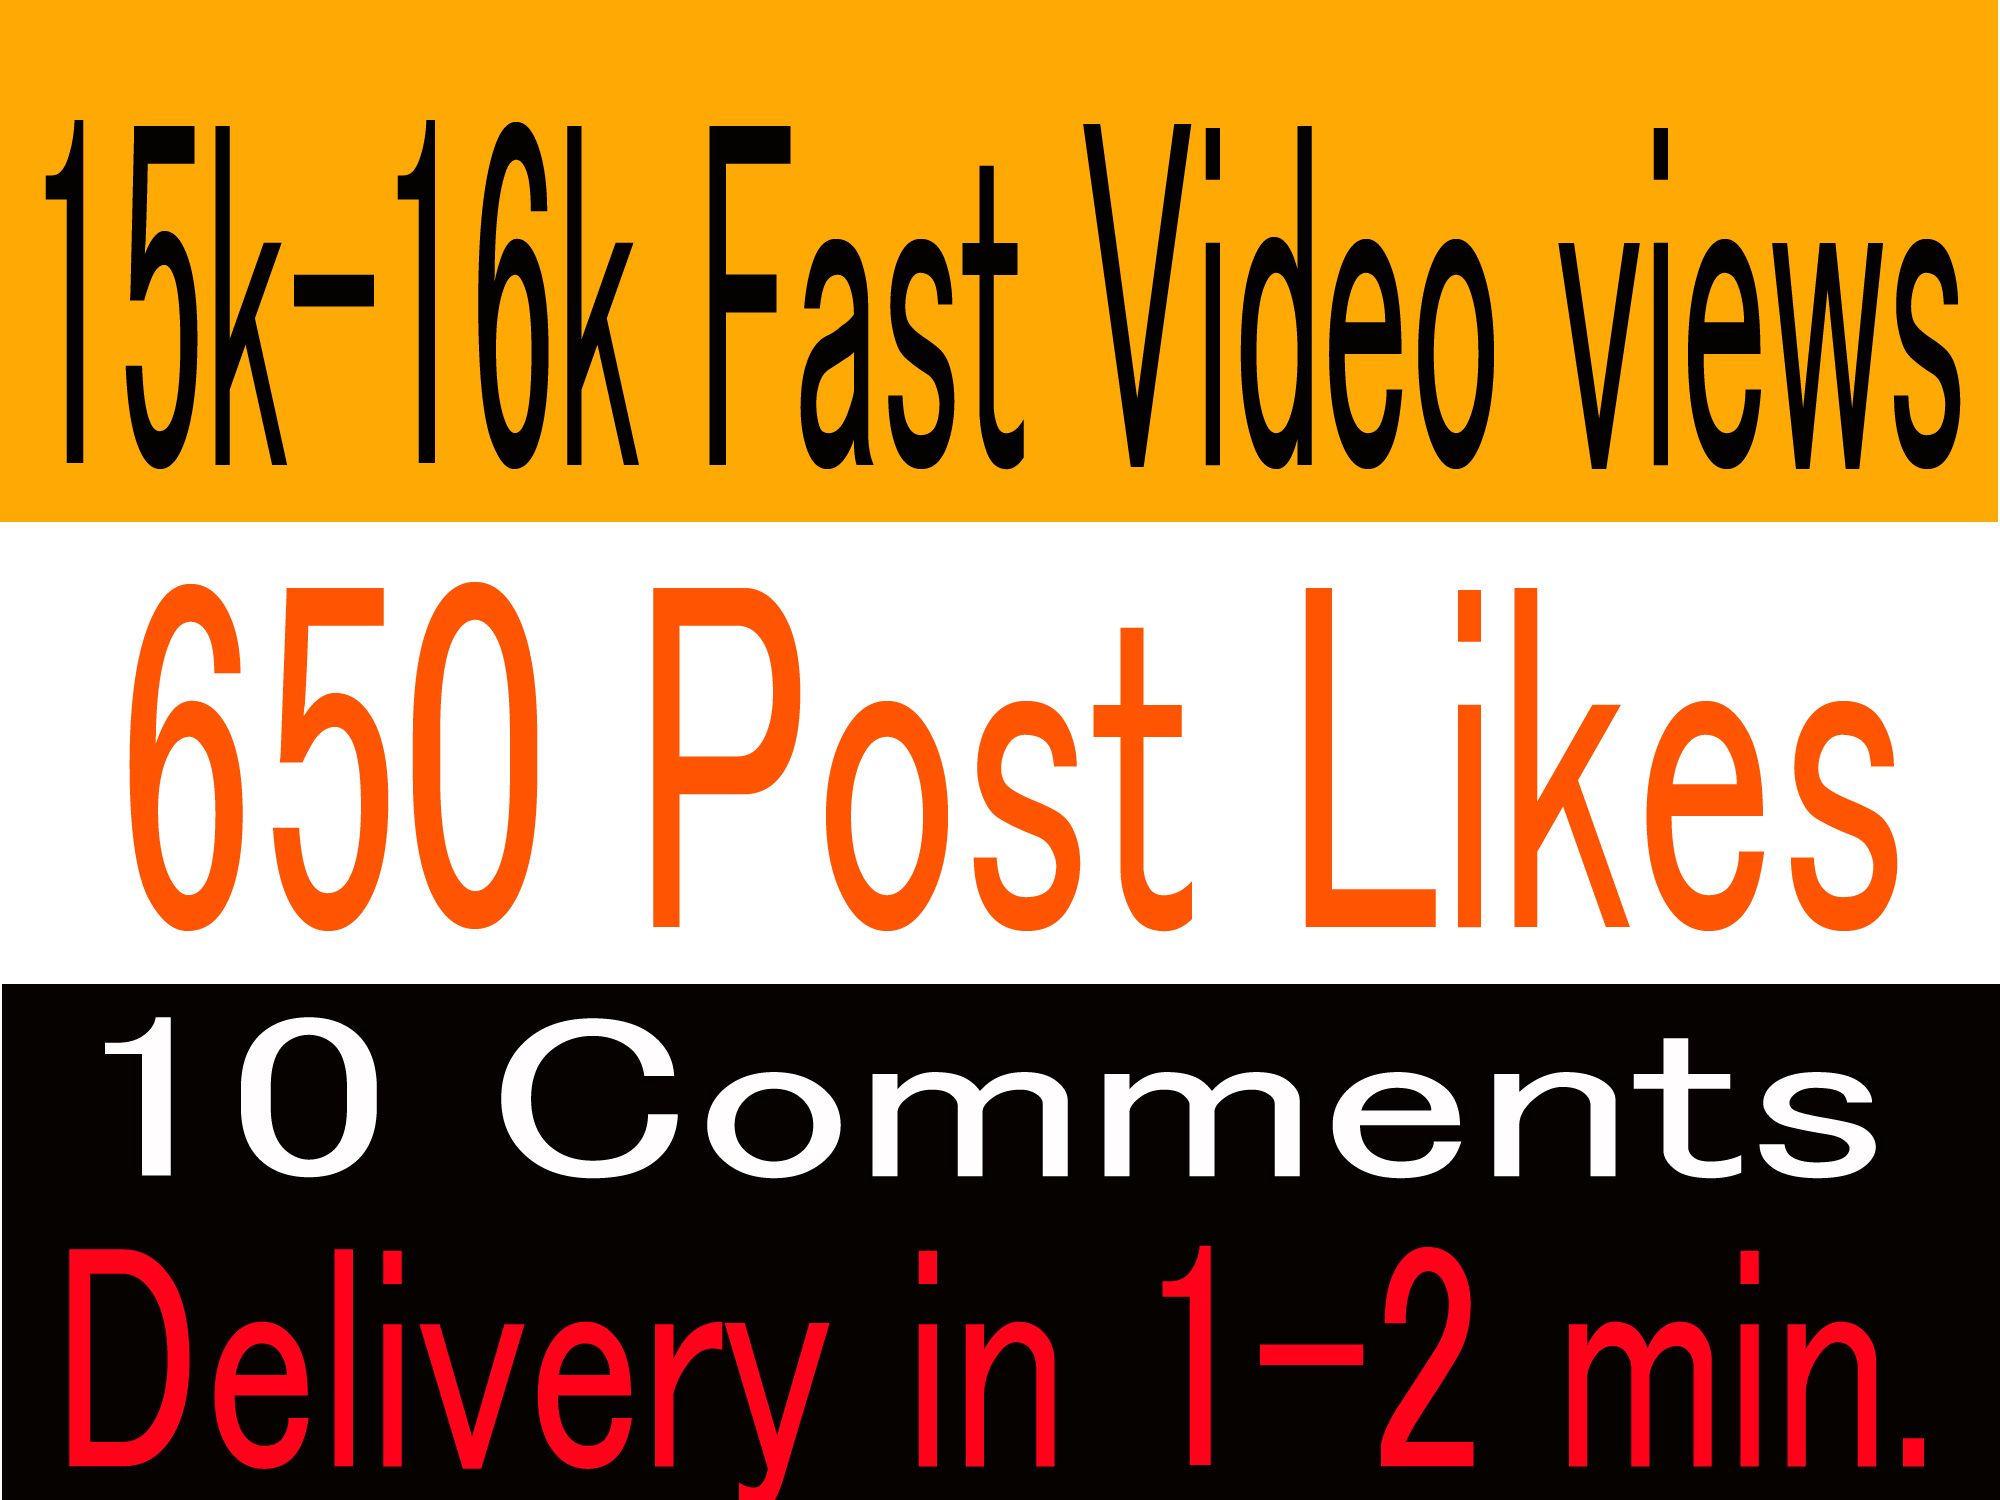 Hq,  instant 15k-16k video views or 650+ Likes or 10 comments Social media promotion